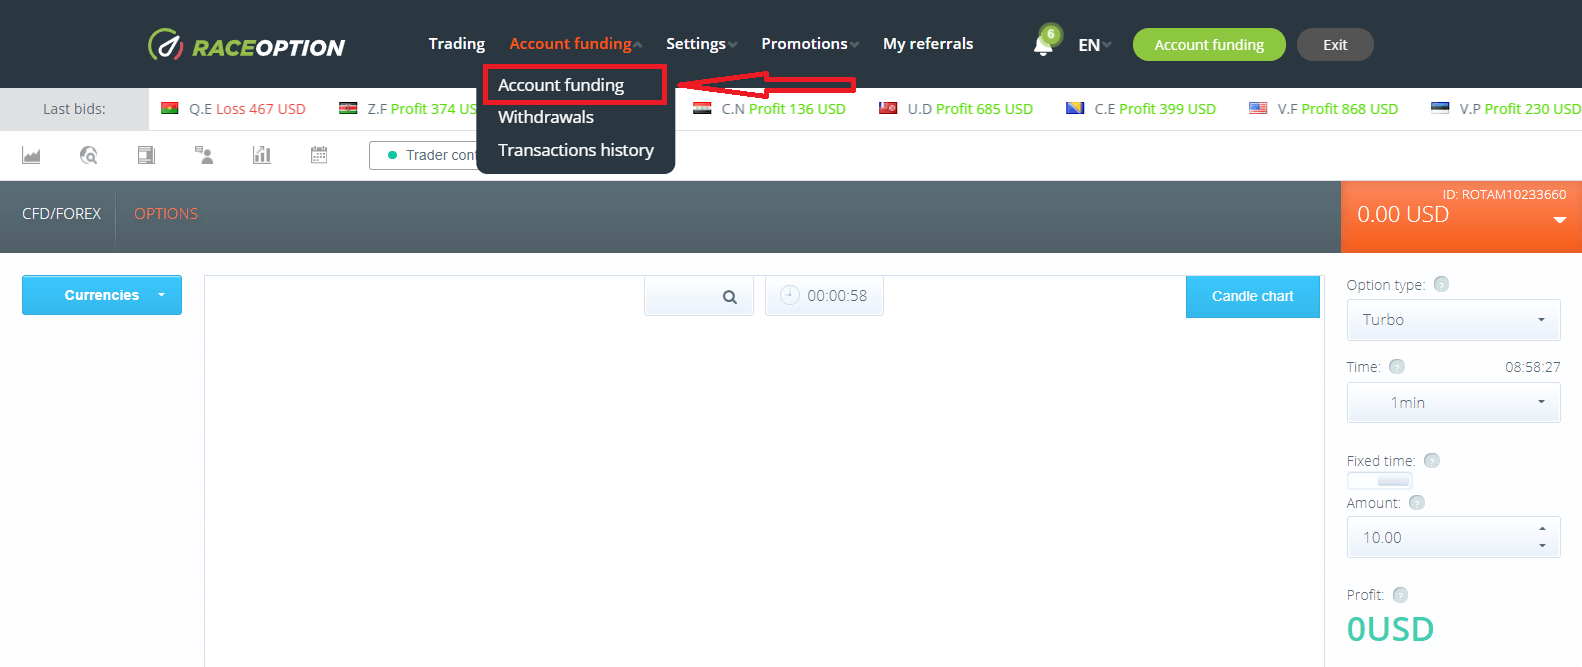 How to Withdraw and Make a Deposit Money in Raceoption